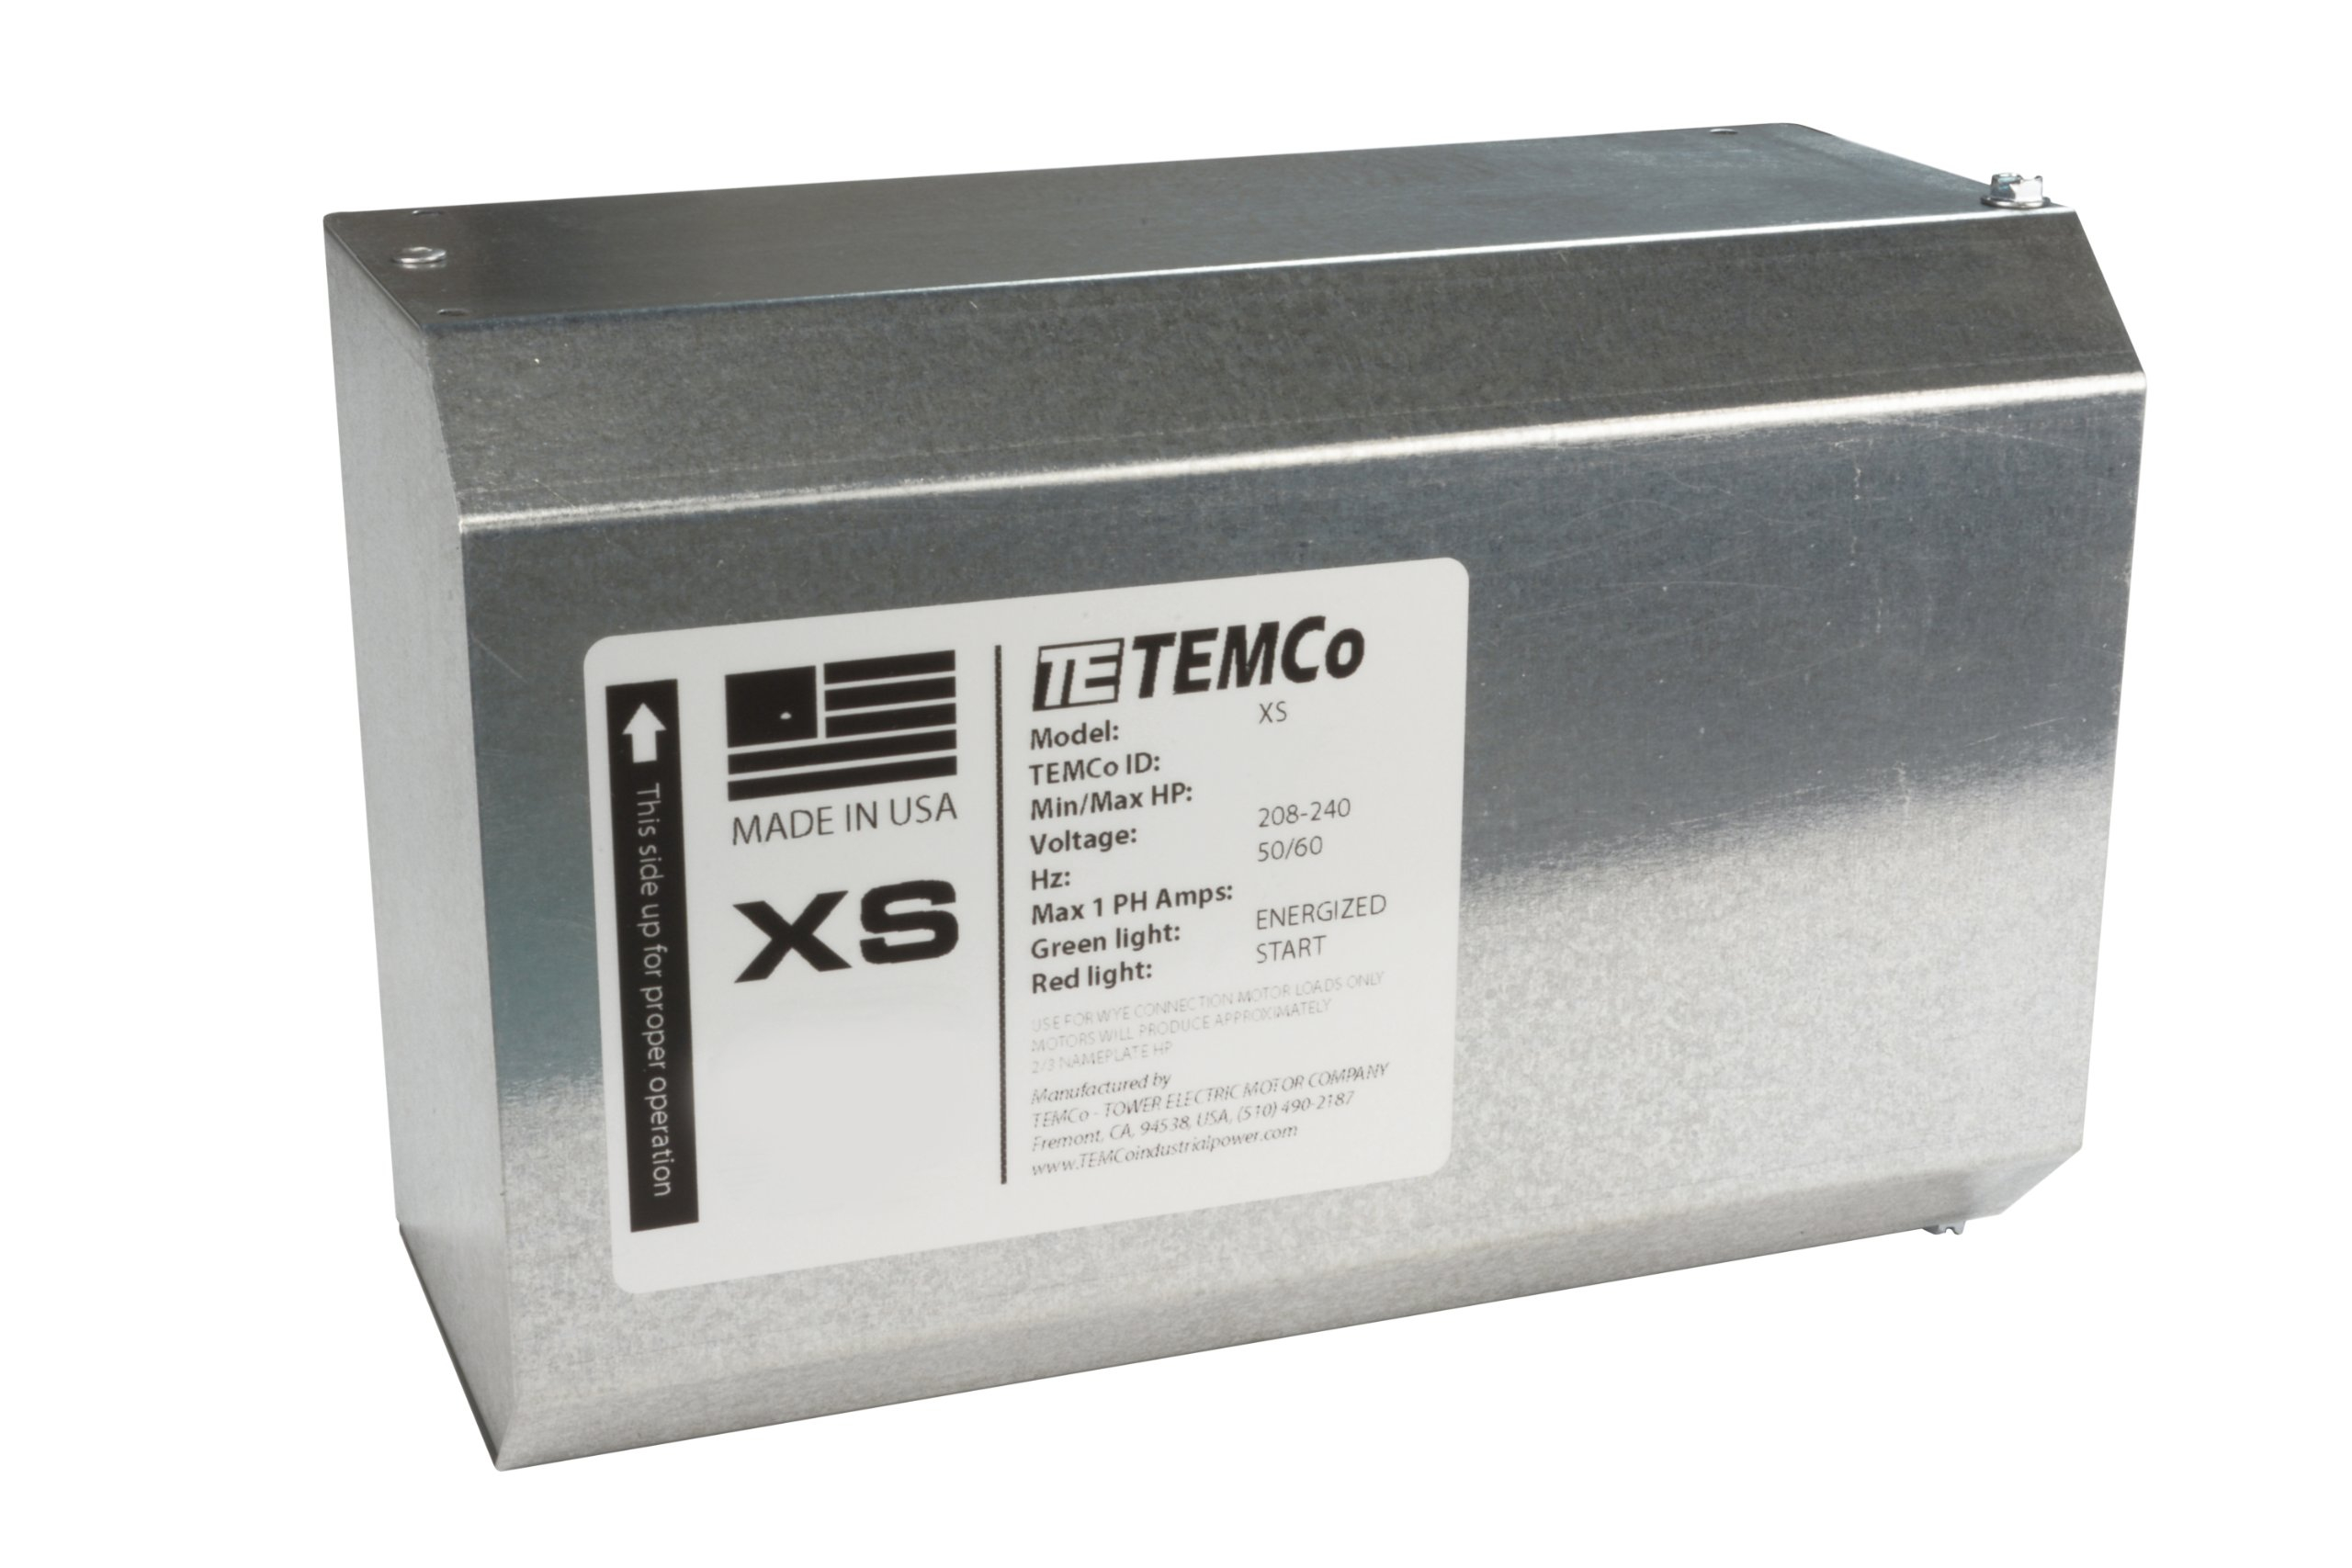 TEMCo XS12 Static Phase Converter PC0014 - HD 8 - 12 HP Static Phase Converter Mill Drill Saw MADE IN USA Single to three 5 Year Warranty